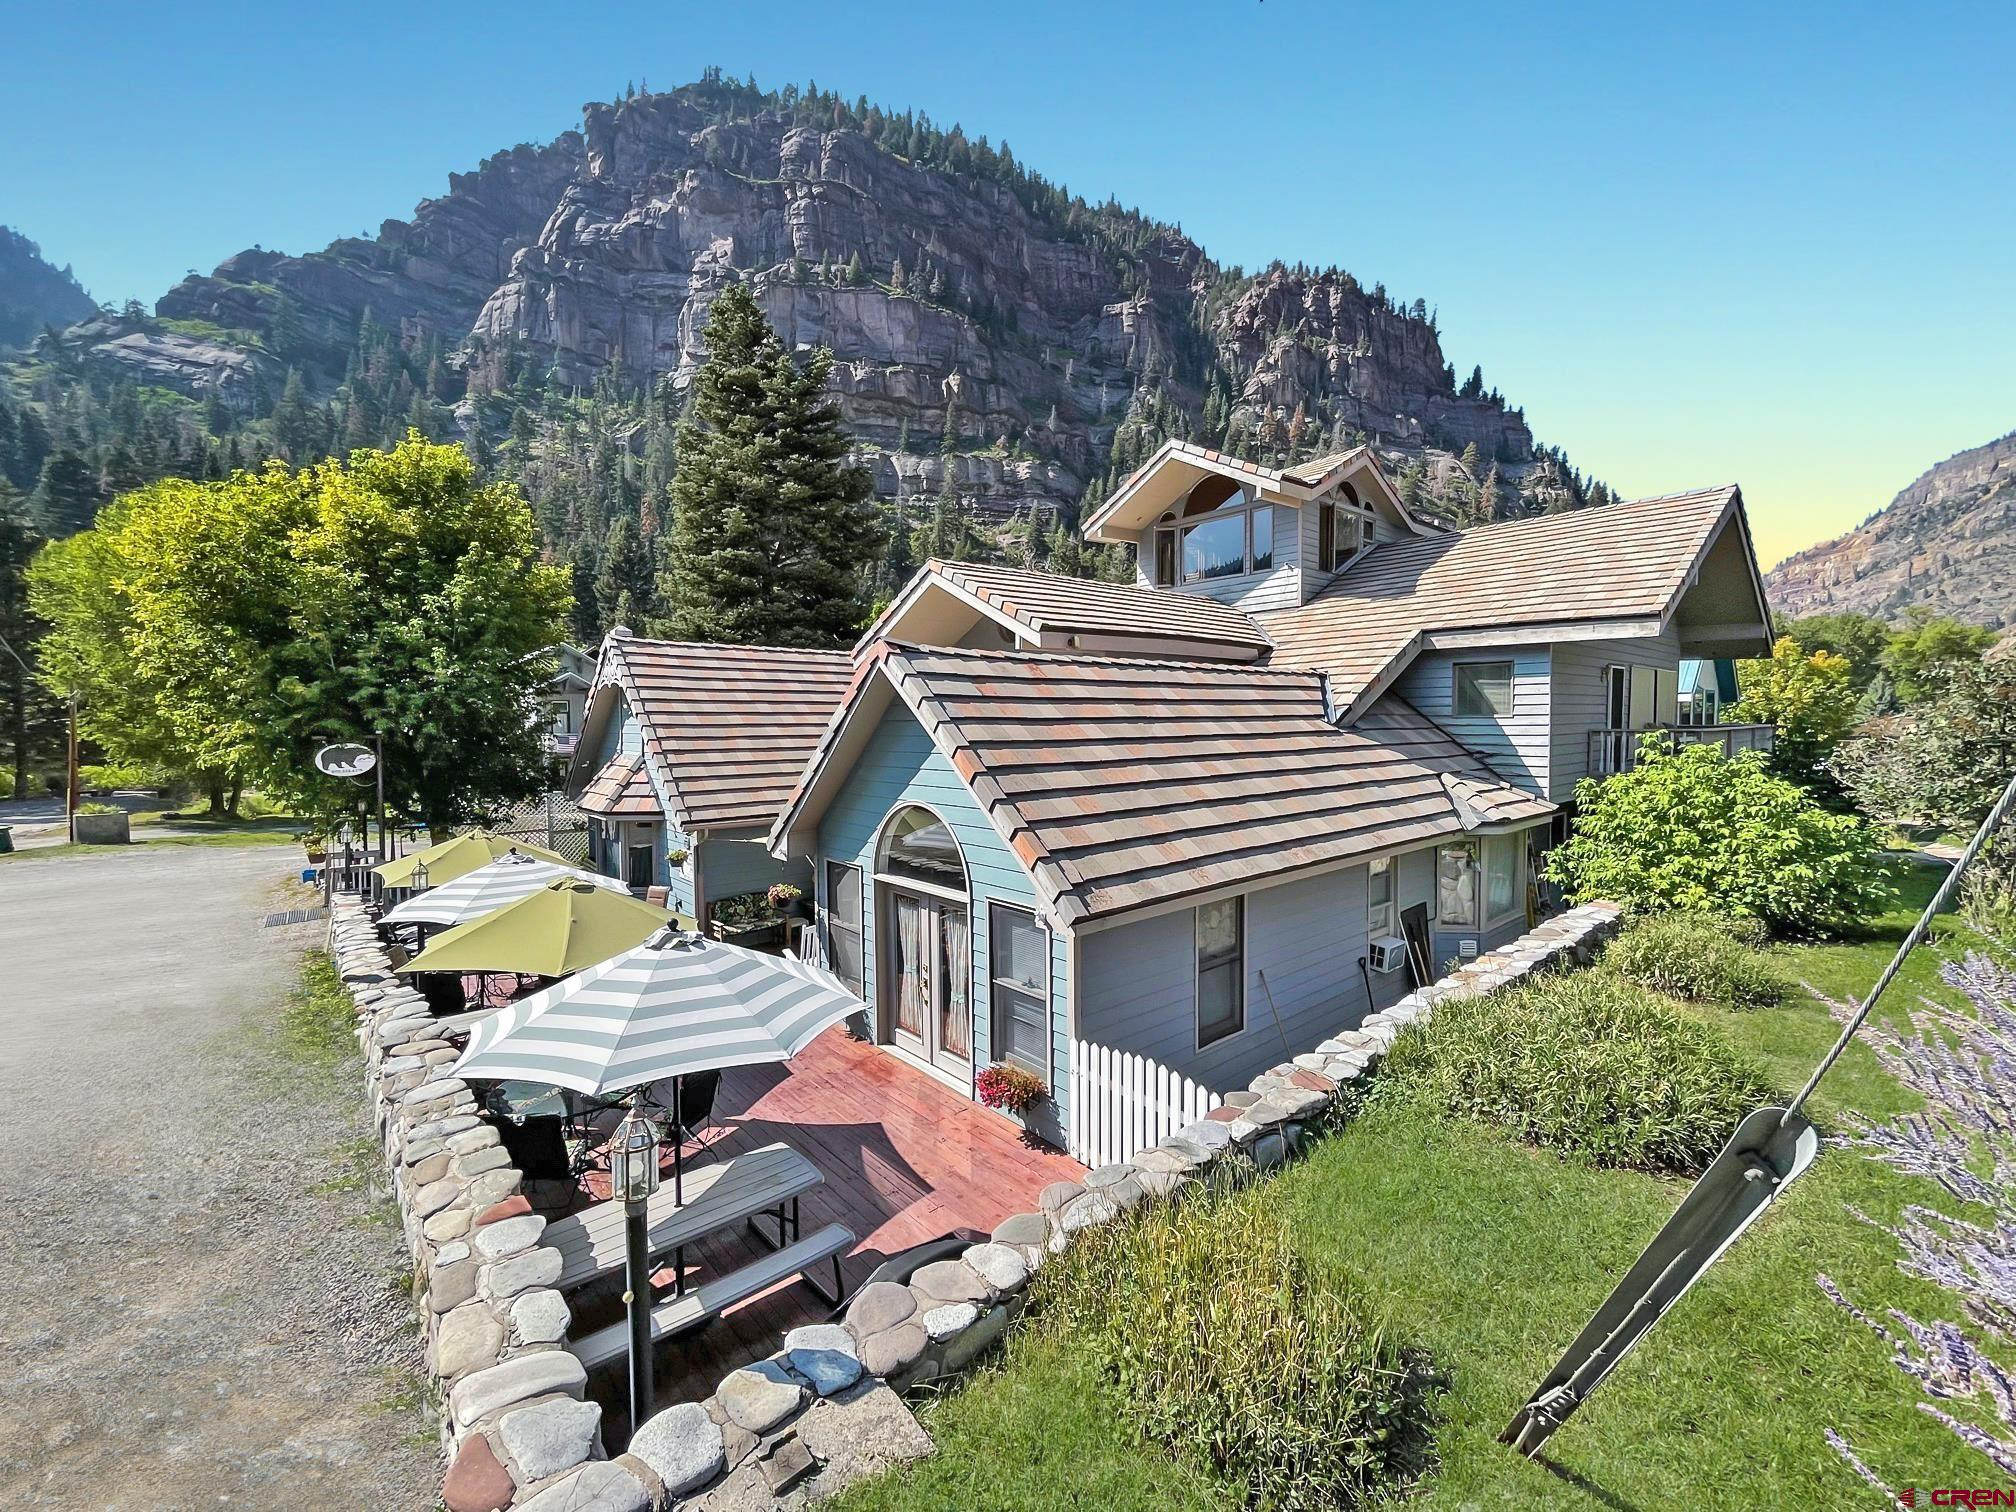 Purpose built as a large Bed & Breakfast in one of the most desirable high mountain towns in Colorado, the Black Bear Manor B&B is now offered for sale. This successful, turnkey business and real estate (4986 s.f. livable on a 6969 s.f. in-town lot) included in this offering has been in operation since 1992 with nine spacious guest rooms, all having en-suite baths and external access. Included is an owners/manager's quarters that can be converted to a 10th guest room if desired. A substantial basement remains available for storage or future expansion. The 1696 s.f. wrap-around deck has picnic tables, a porch swing, umbrellas, café-style outdoor seating, and a year-round guest hot tub. The 3rd floor observatory offers a 270-degree view of the spectacular big mountain peaks that surround and tower over this location.  There is a wrap-around deck on both floors and ALL rooms have an external entrance except for the owner's quarters (room #1), however one could be added.  Owner's quarters could be converted into a guest suite for additional income.  All rooms have their own private bathroom, some with whirlpool tubs and three with fireplaces.  Recent upgrades include a new boiler, new equipment in the commercial kitchen, new commercial laundry machines, new security surveillance system, and A/C in all guest rooms.  The property is served by high speed fiber optic internet.  Commercial/Residential zoning could allow a conversion into a 10 bedroom single-family residence.   Financials available with signed NDA - please inquire with Broker.